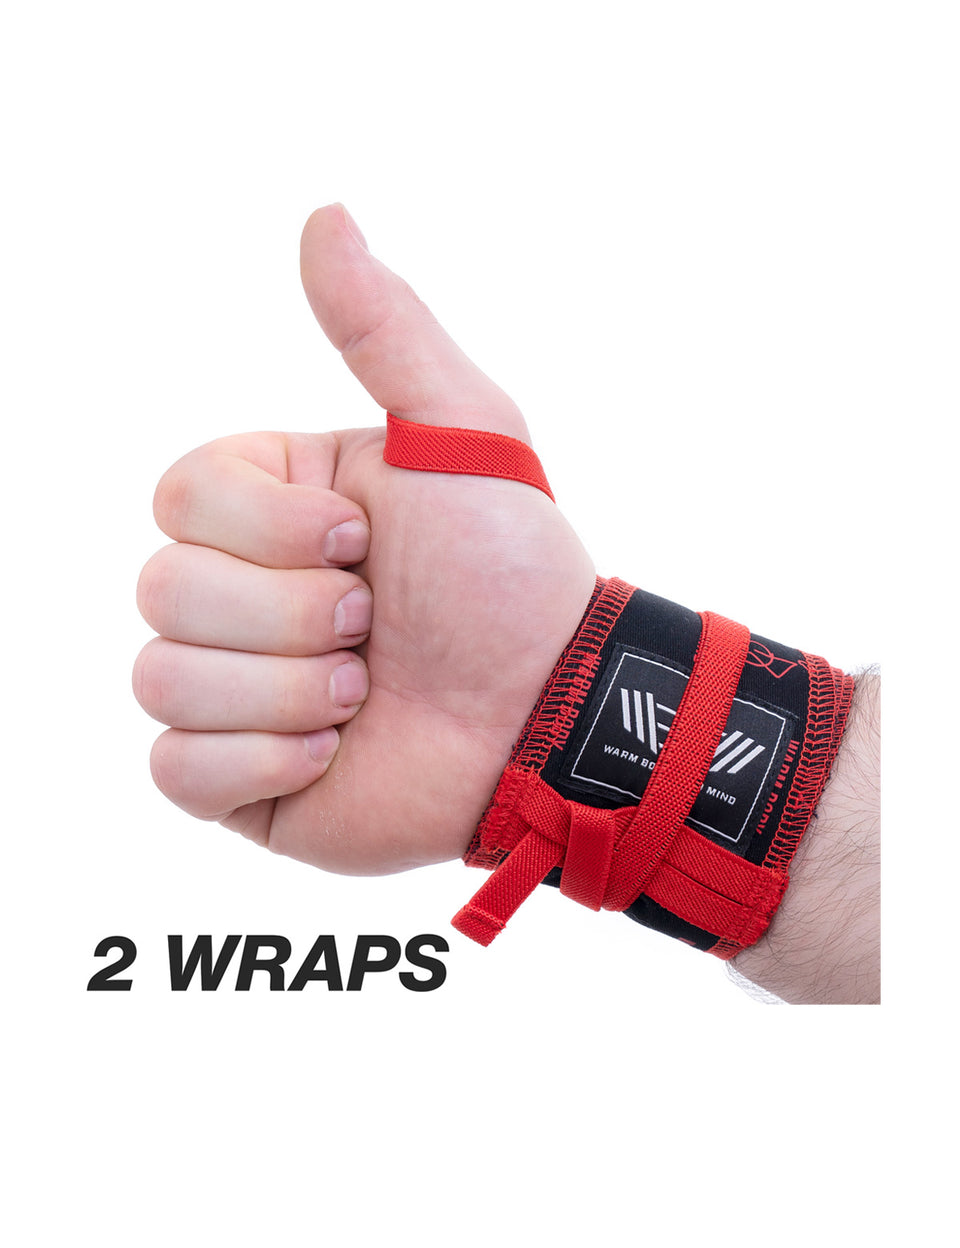 weightlifting wrist wraps cotton olympic crossfit support